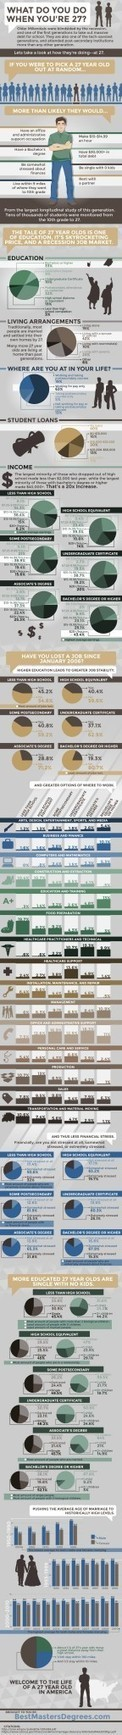 The Life of a 27 year old in America – Millennials Infographic | INTRODUCTION TO THE SOCIAL SCIENCES DIGITAL TEXTBOOK(PSYCHOLOGY-ECONOMICS-SOCIOLOGY):MIKE BUSARELLO | Scoop.it